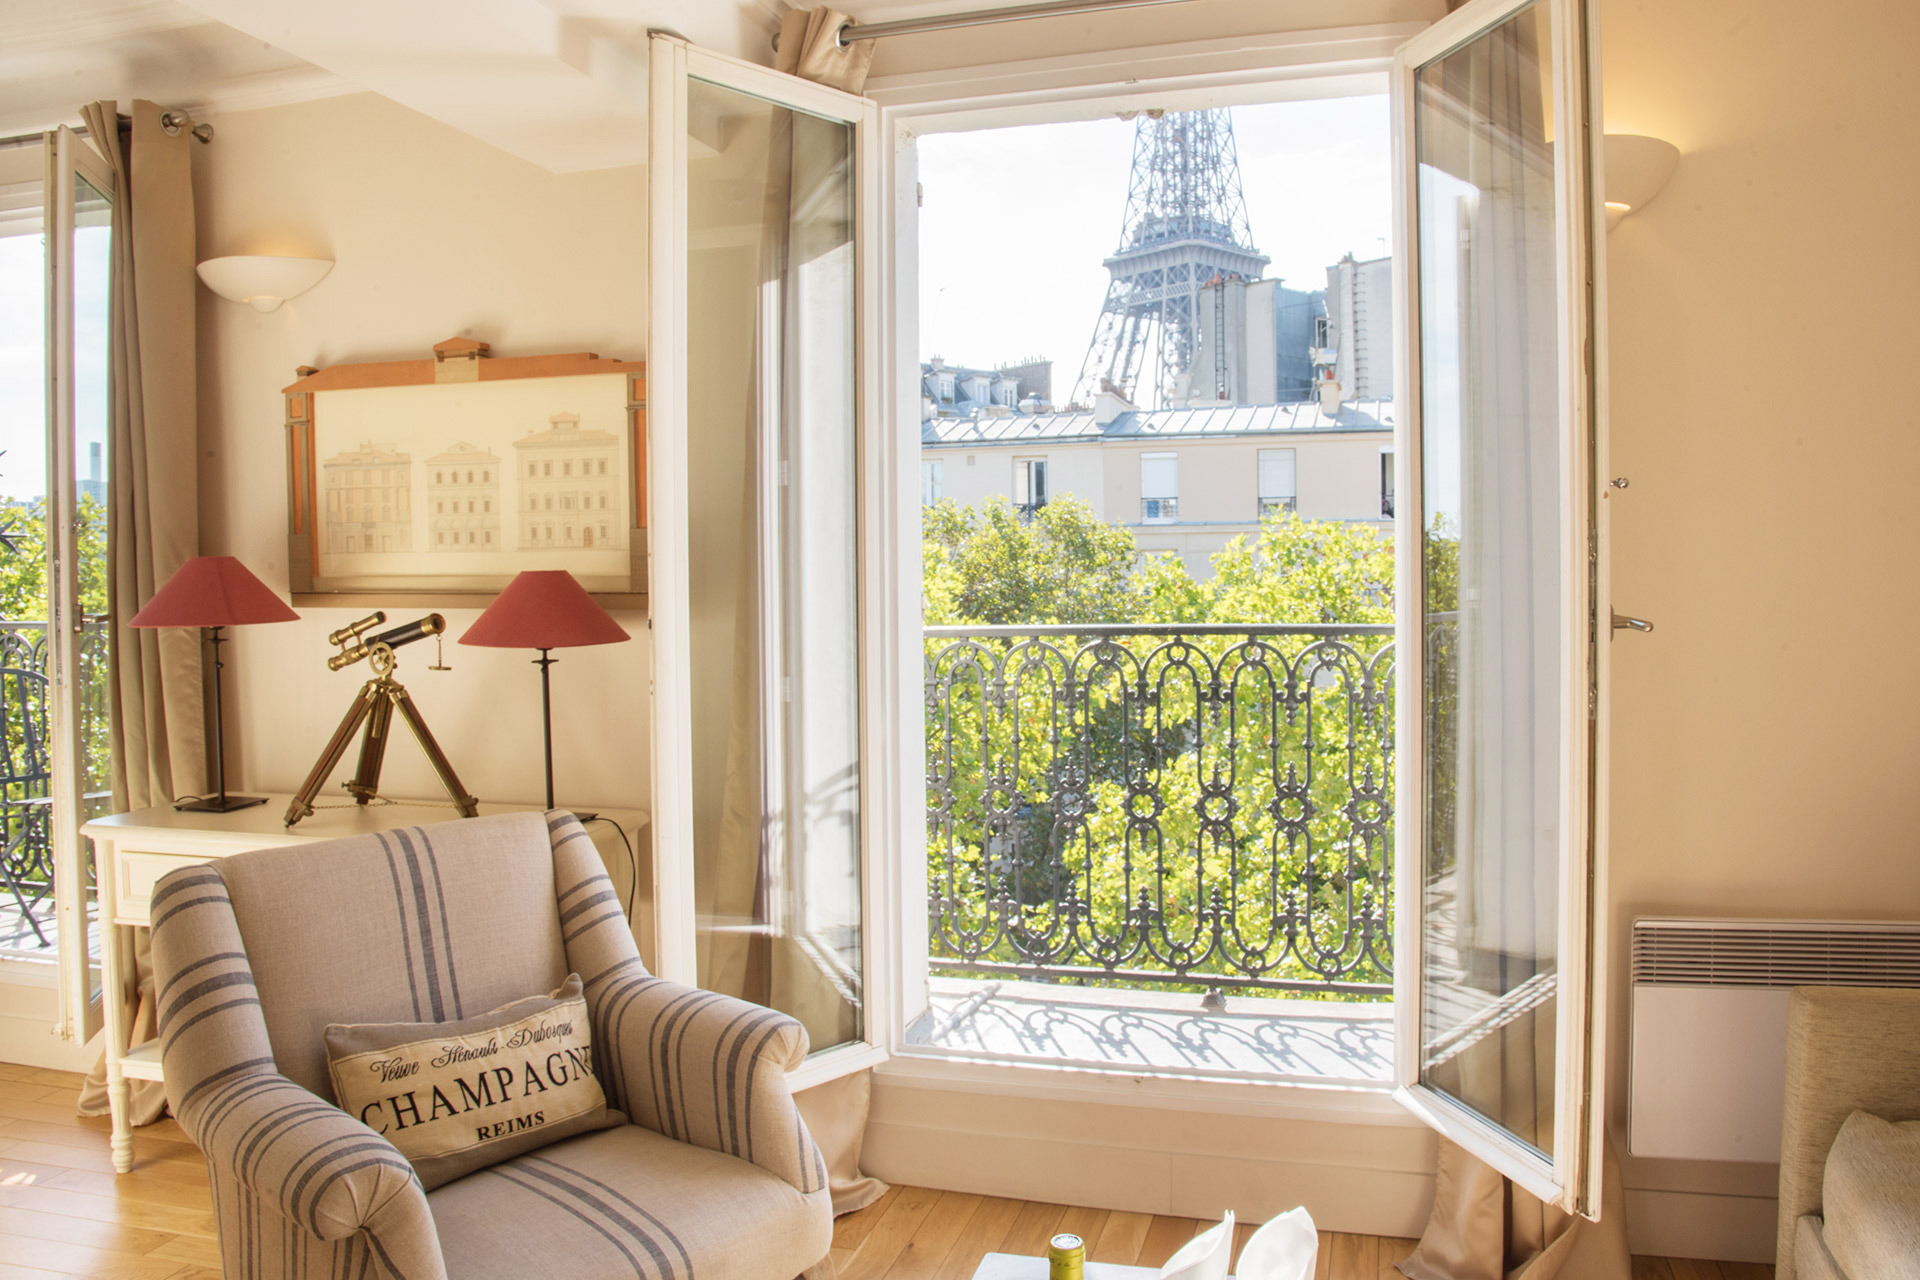 Sit back and relax with this view of the Eiffel Tower from the Cabernet vacation rental offered by Paris Perfect